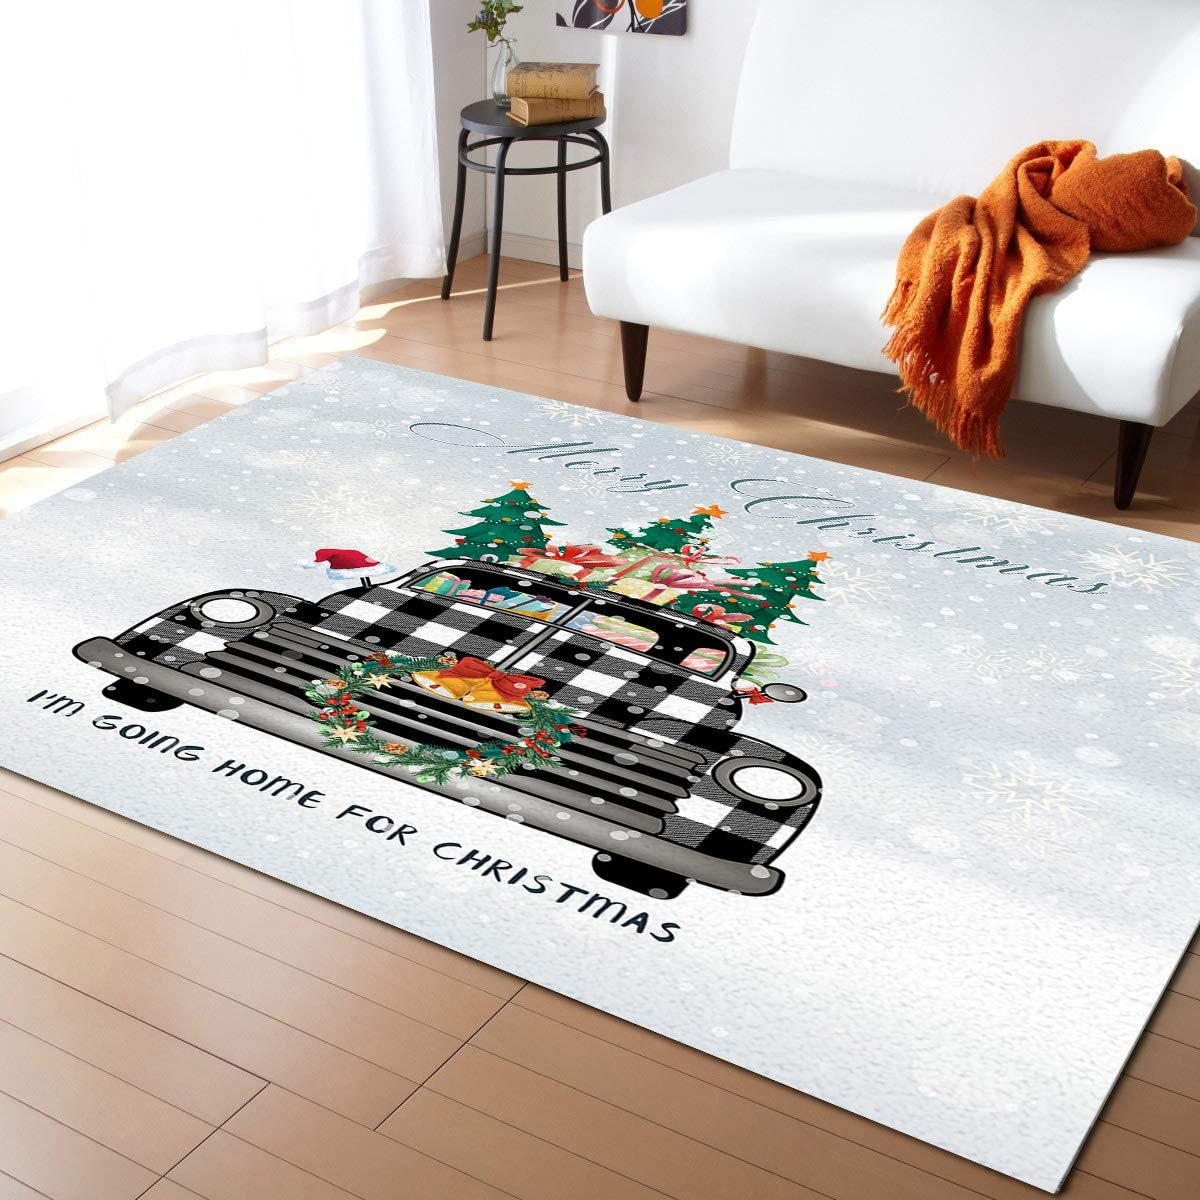 We OFFer at cheap prices Indoor Area Rug Sale Doormat- I'm Goming for Christmas Home Plaid Tru